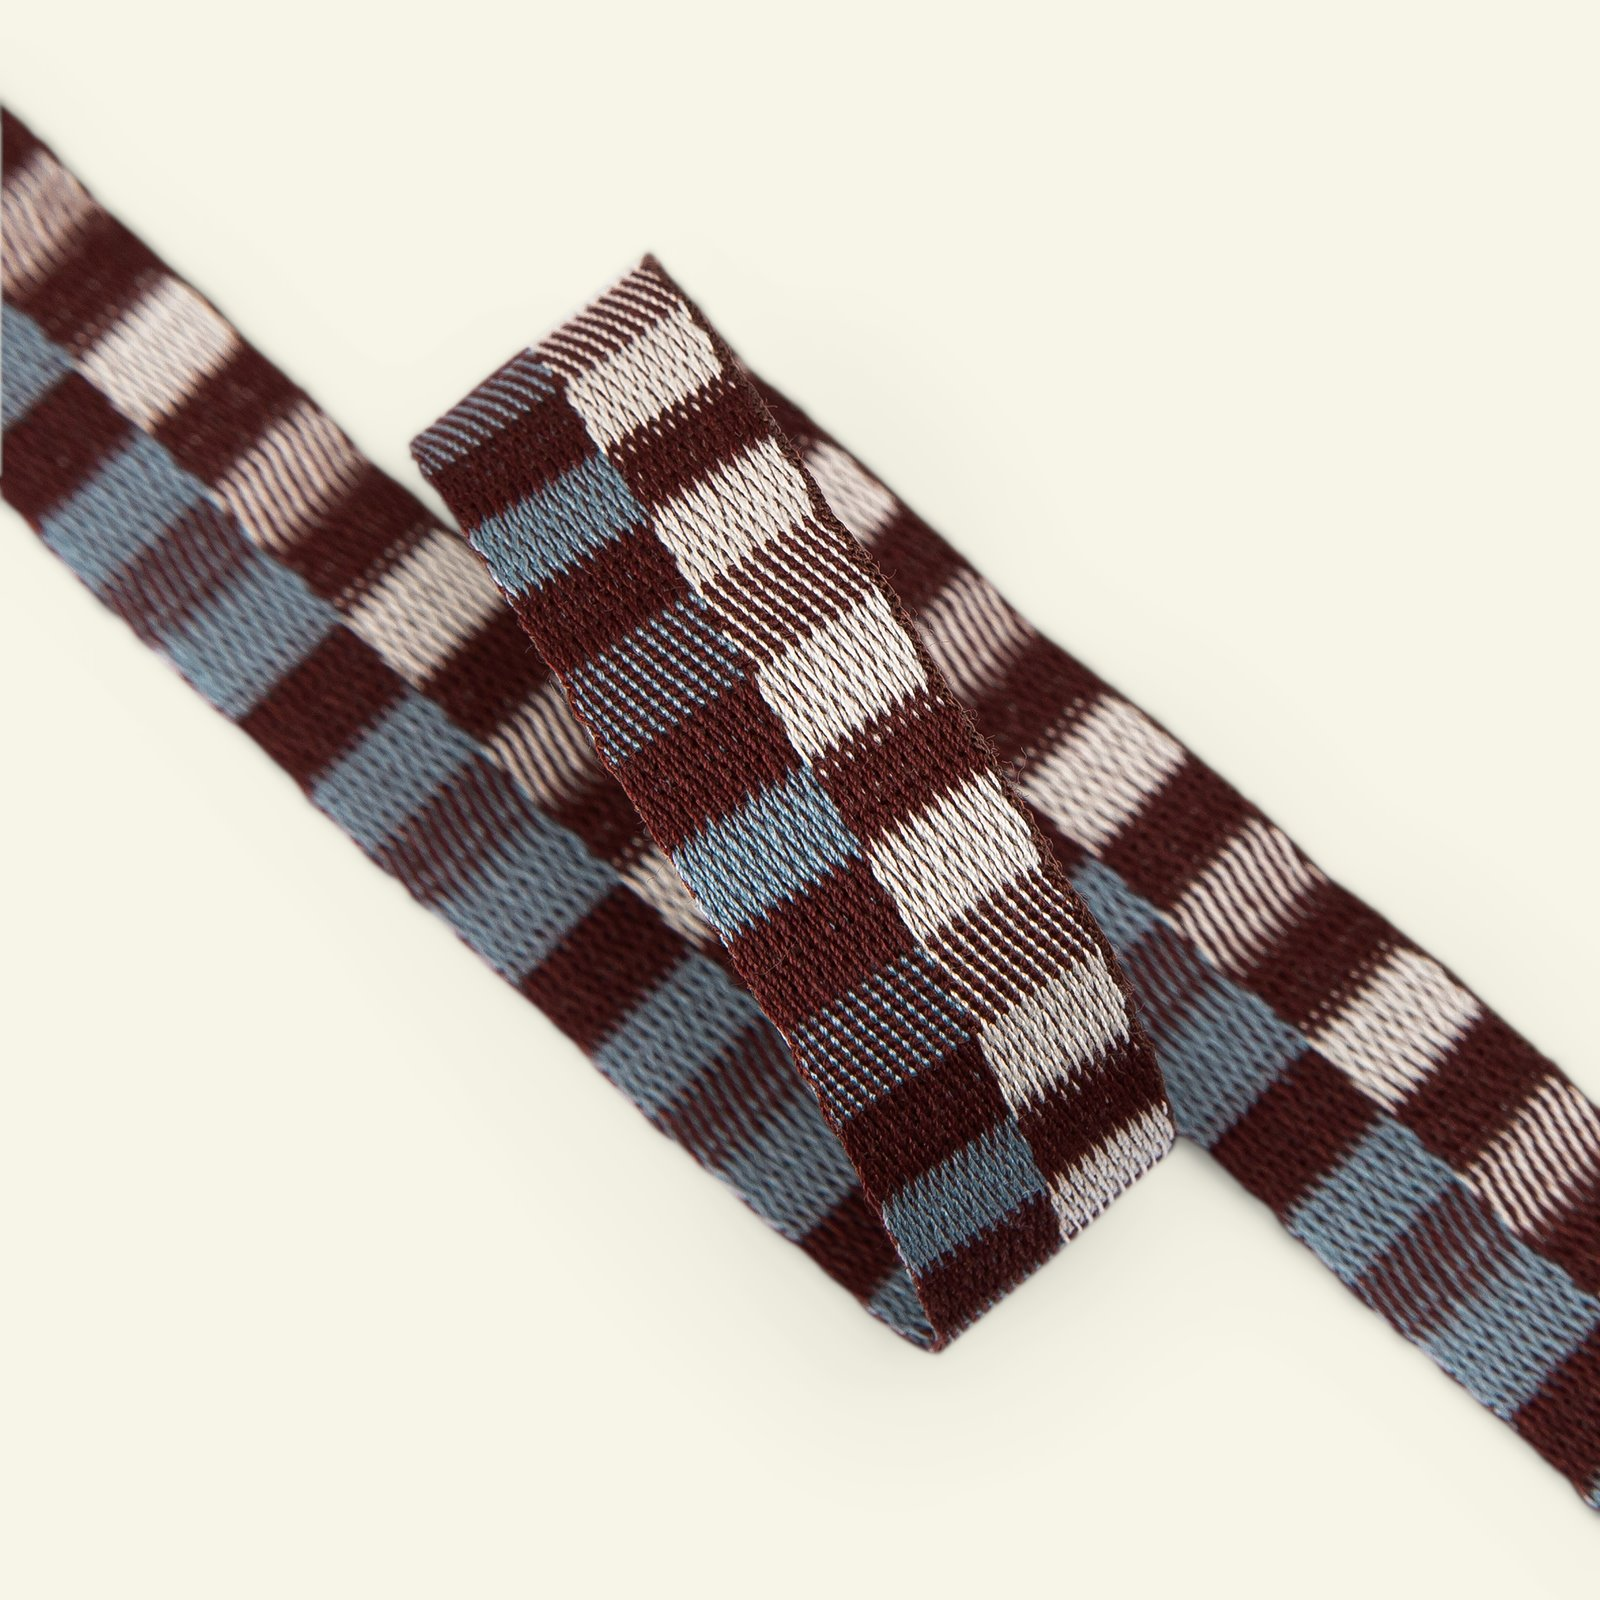 Ribbon check woven 20mm brown/offw. 2m 22398_pack